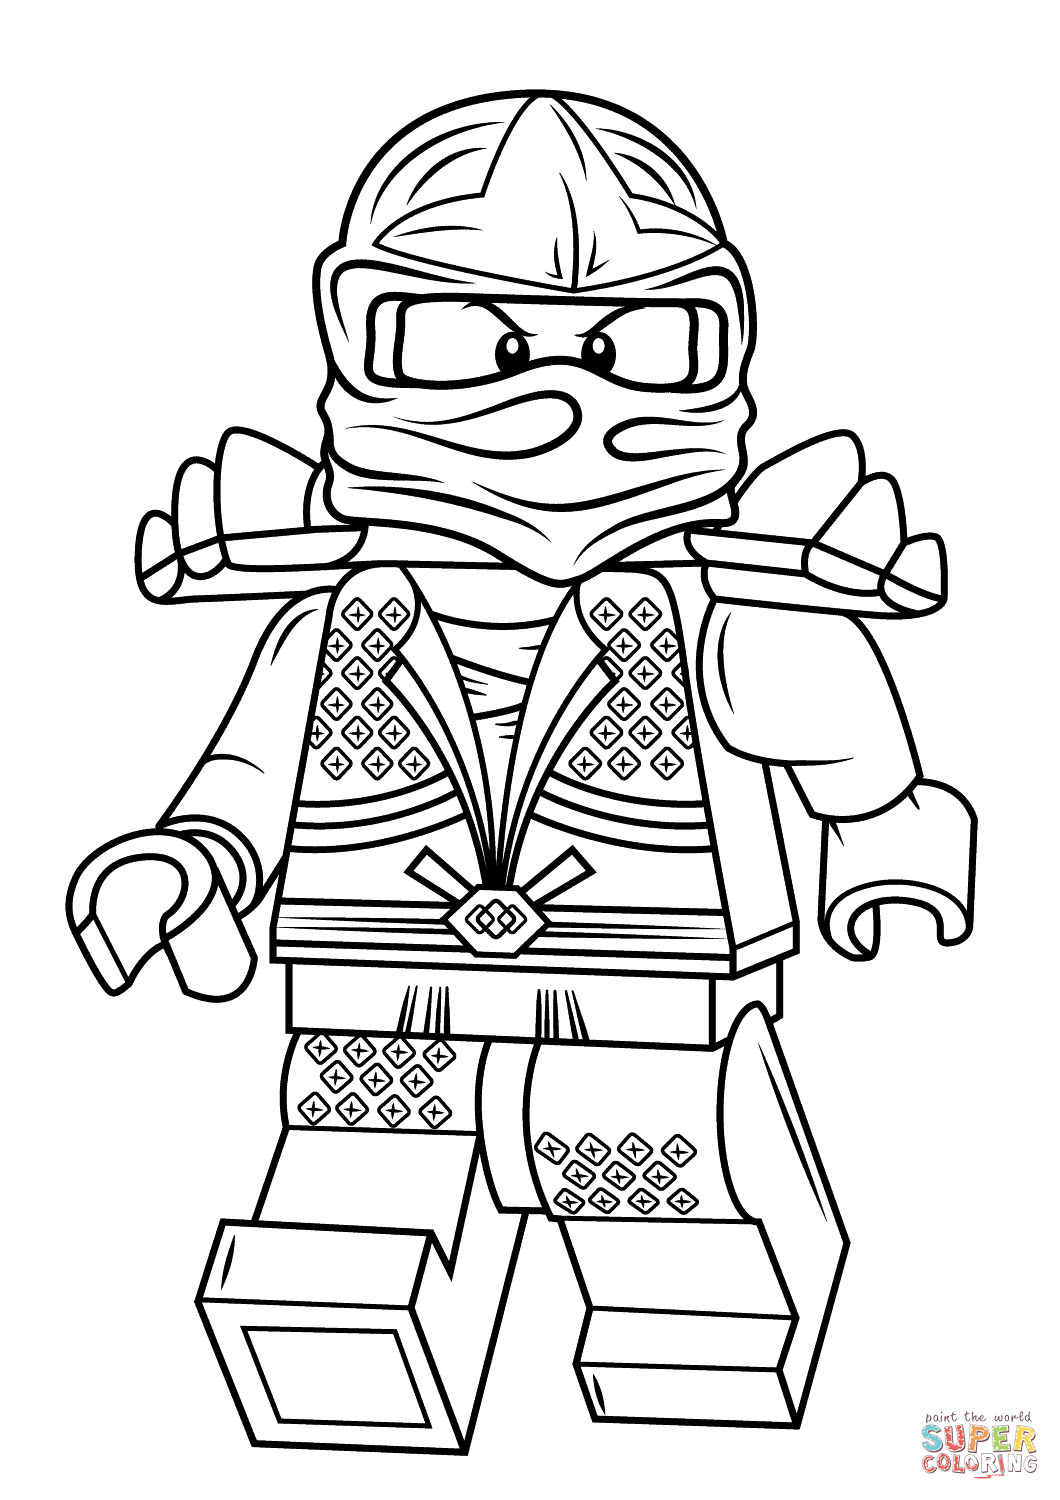 golden ninjago coloring pages ninjago coloring pages golden ninja at getcoloringscom pages ninjago golden coloring